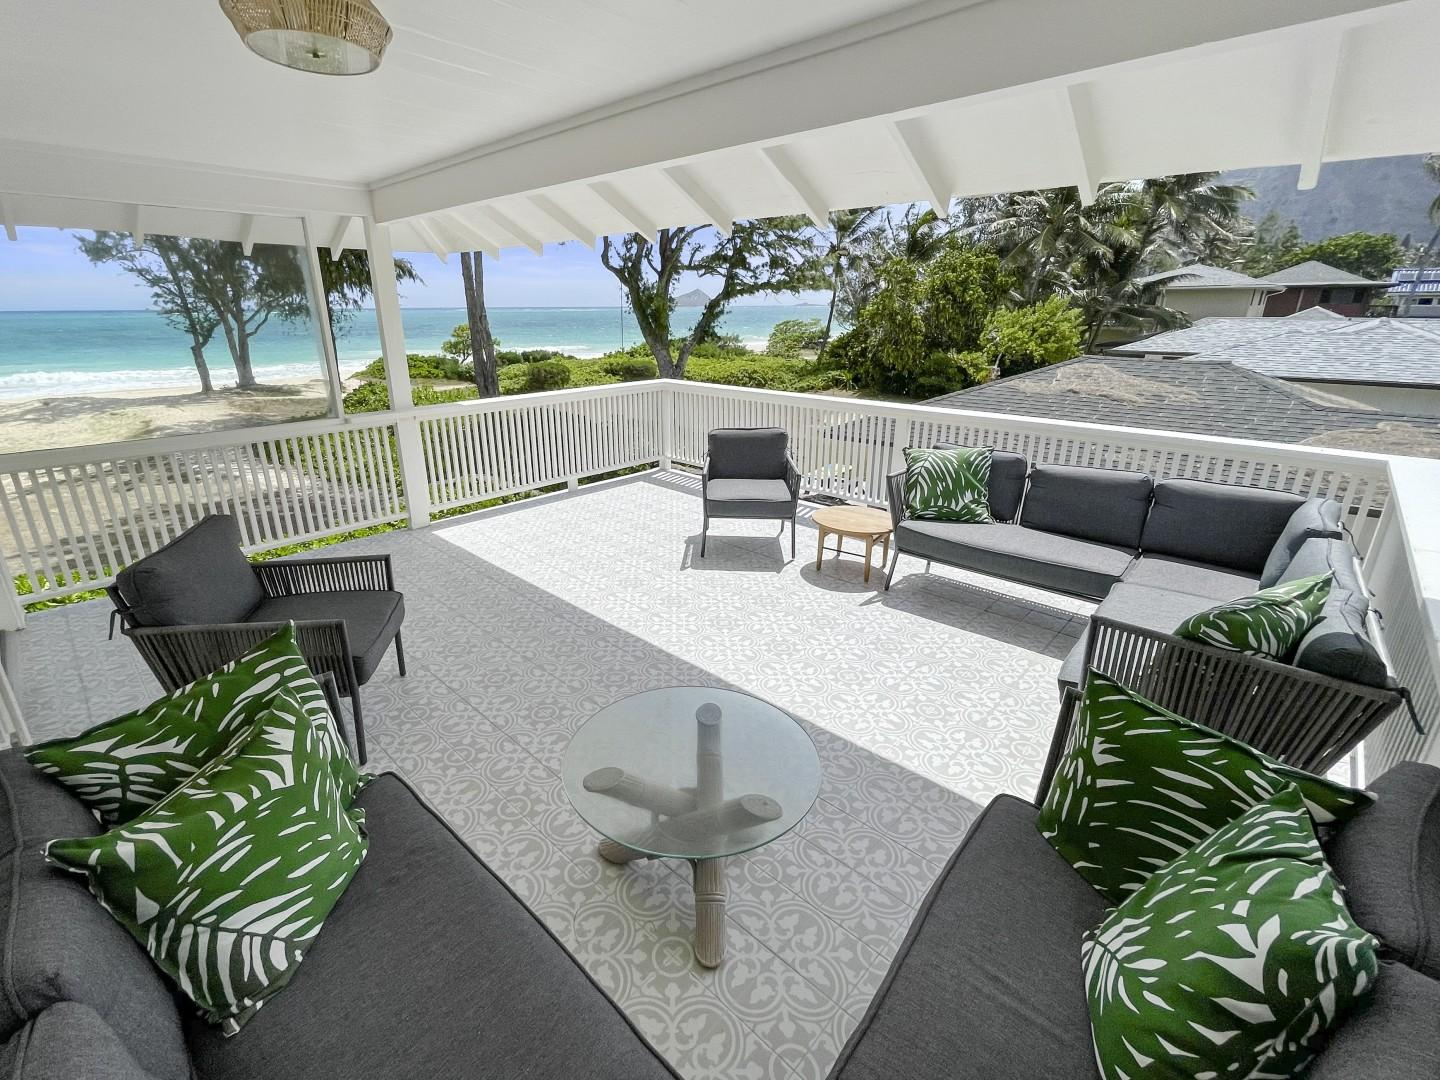 Covered lanai space, is the perfect spot to curl up and watch the sunrise sky light up!